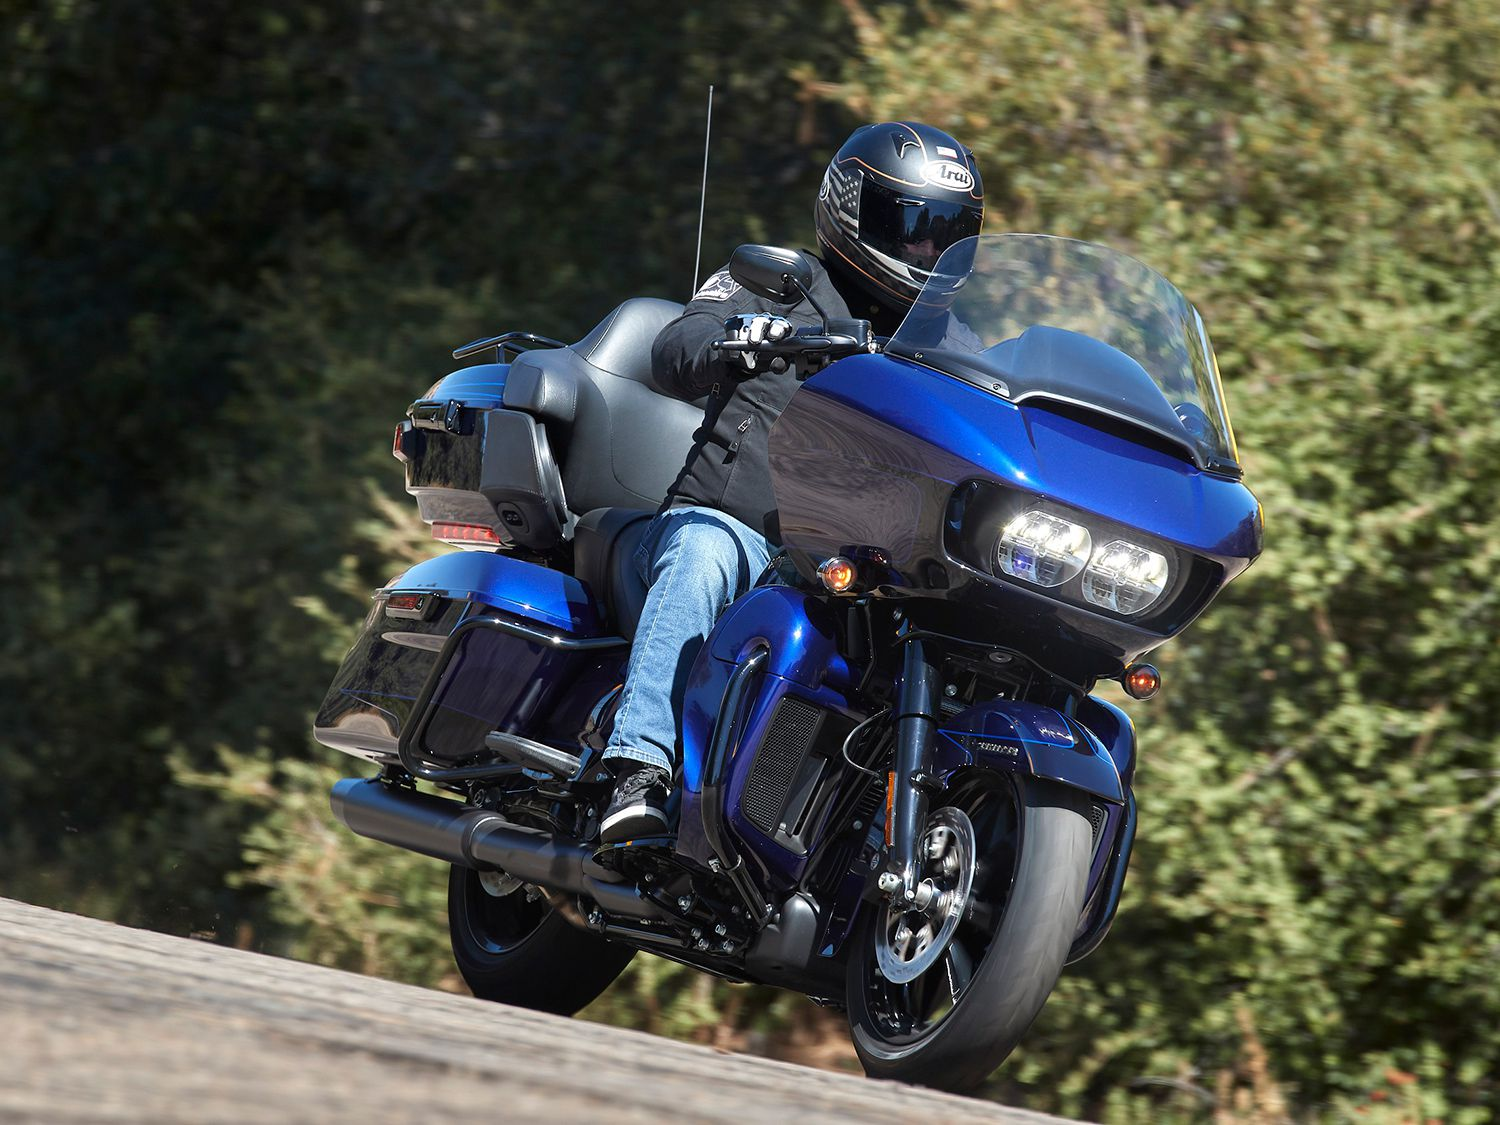 2020 Harley Street Glide Restricted First Journey